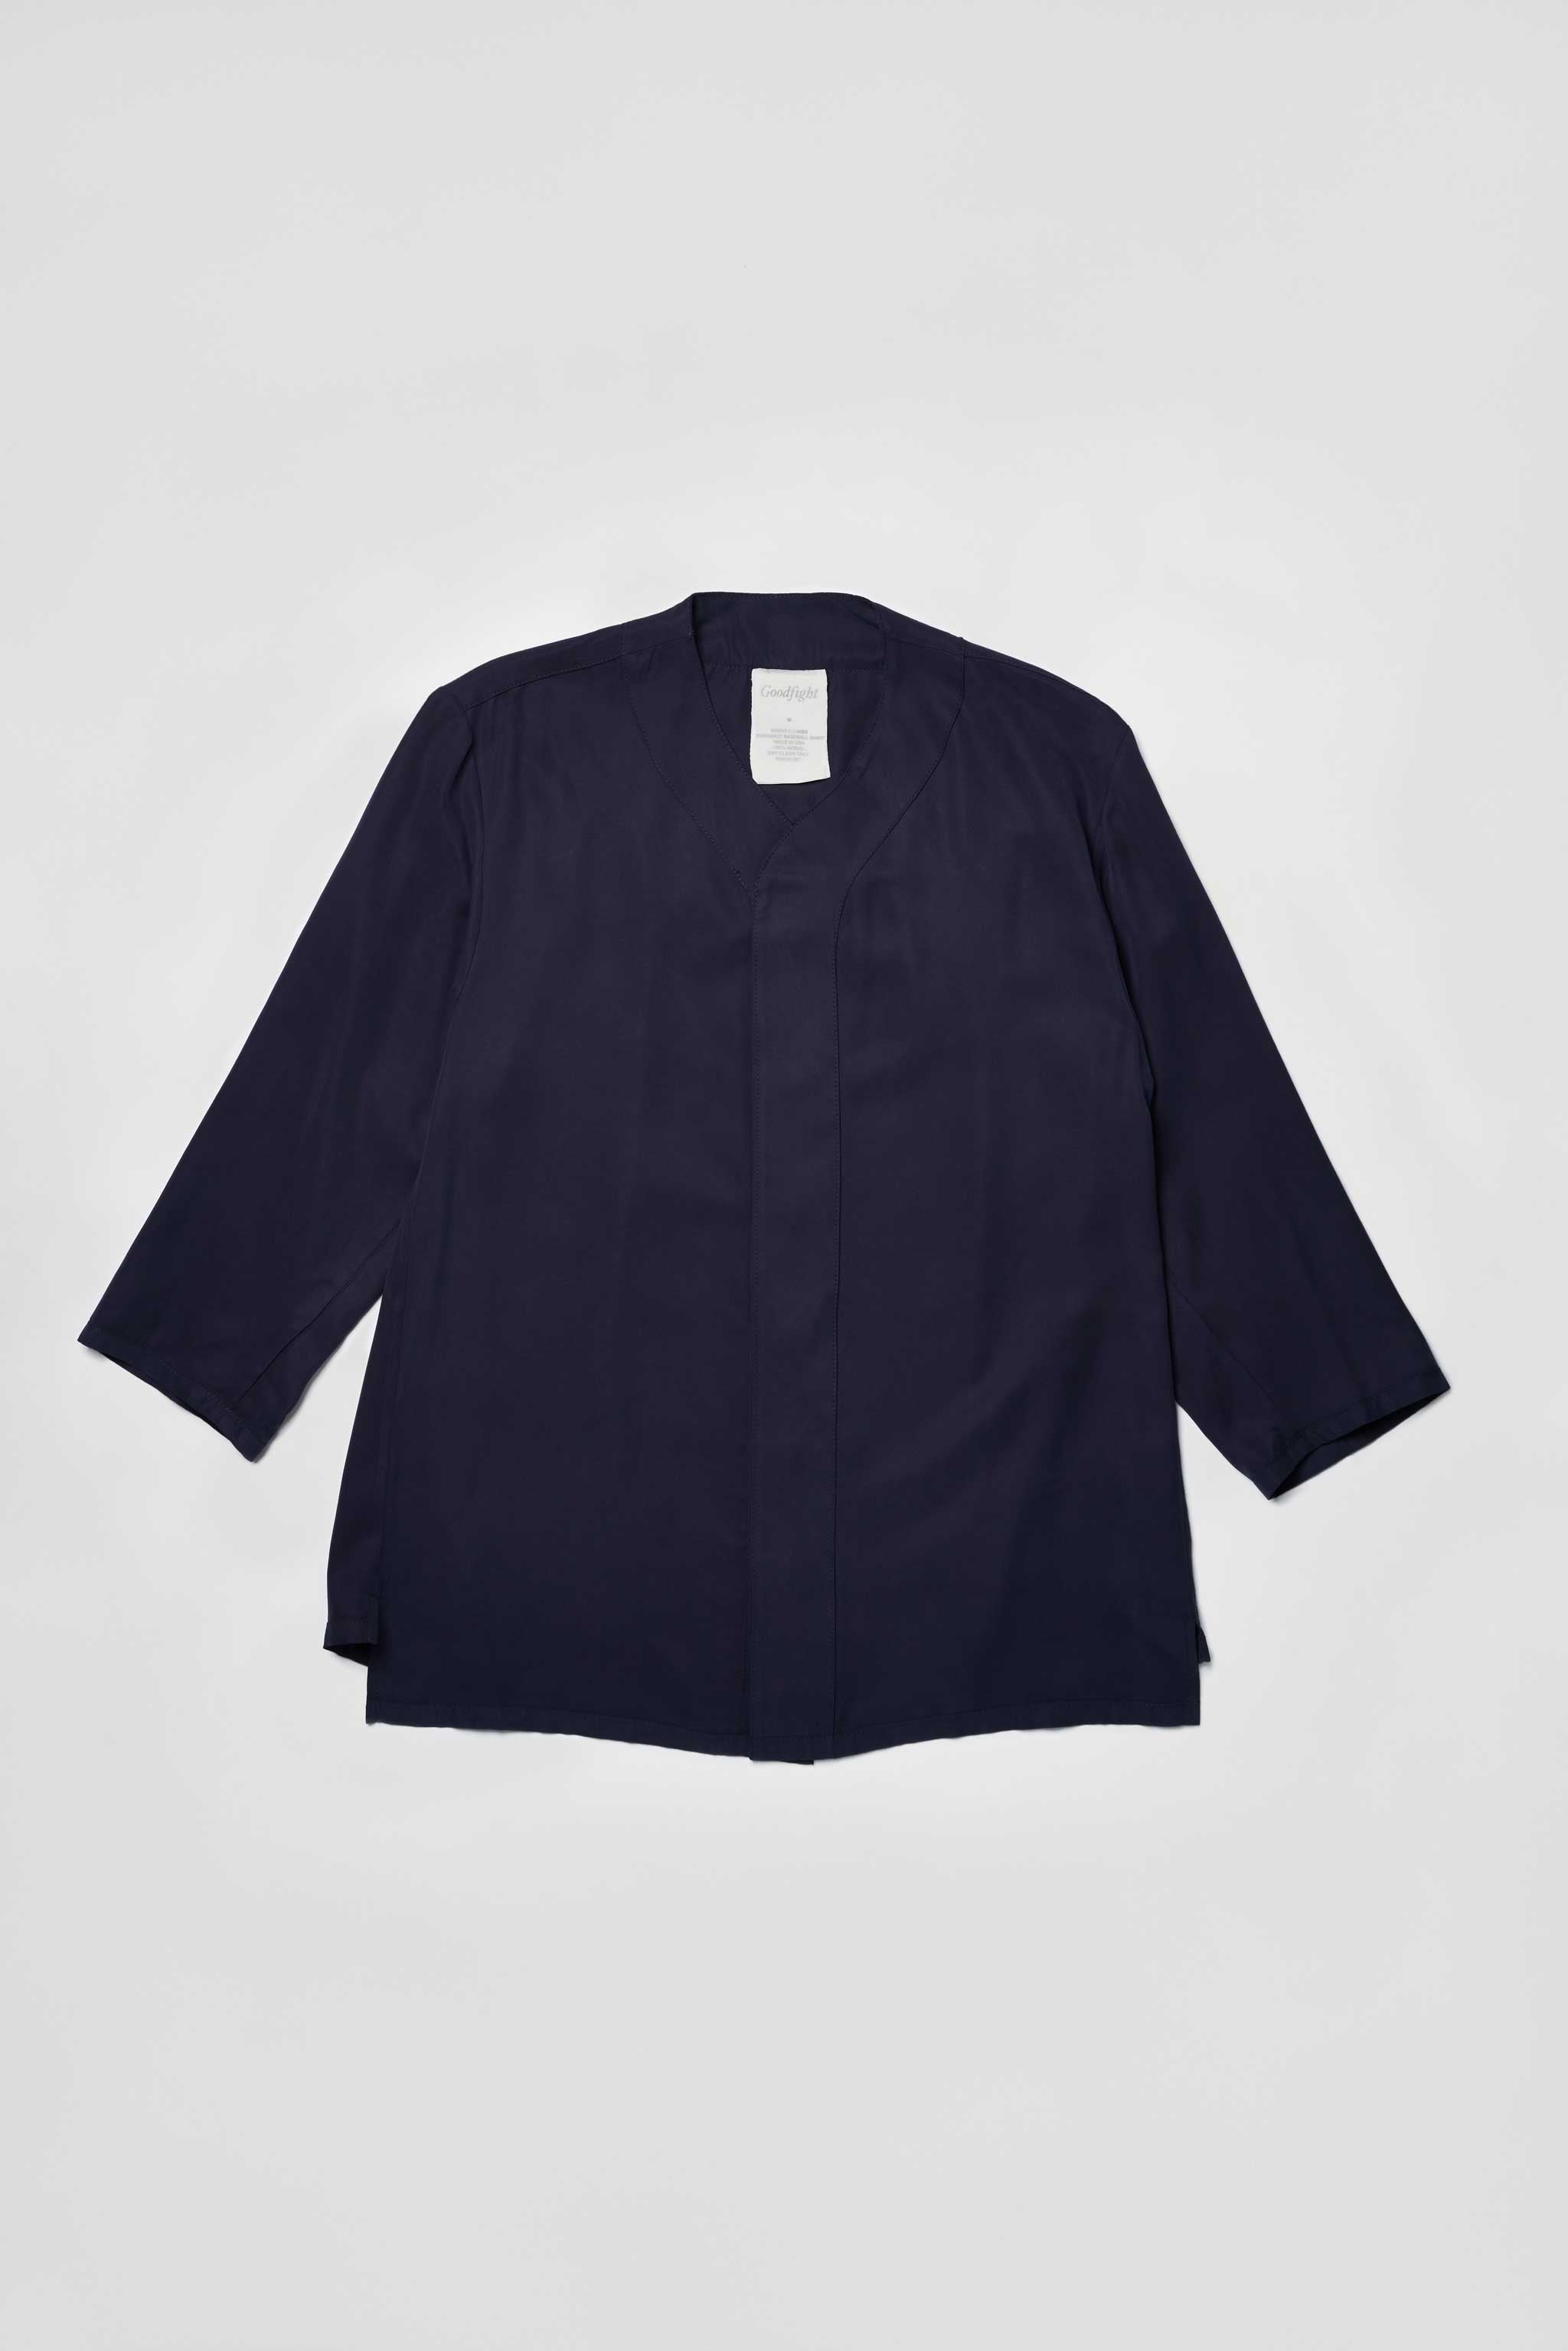 Goodfight Moonshot Baseball Shirt Navy